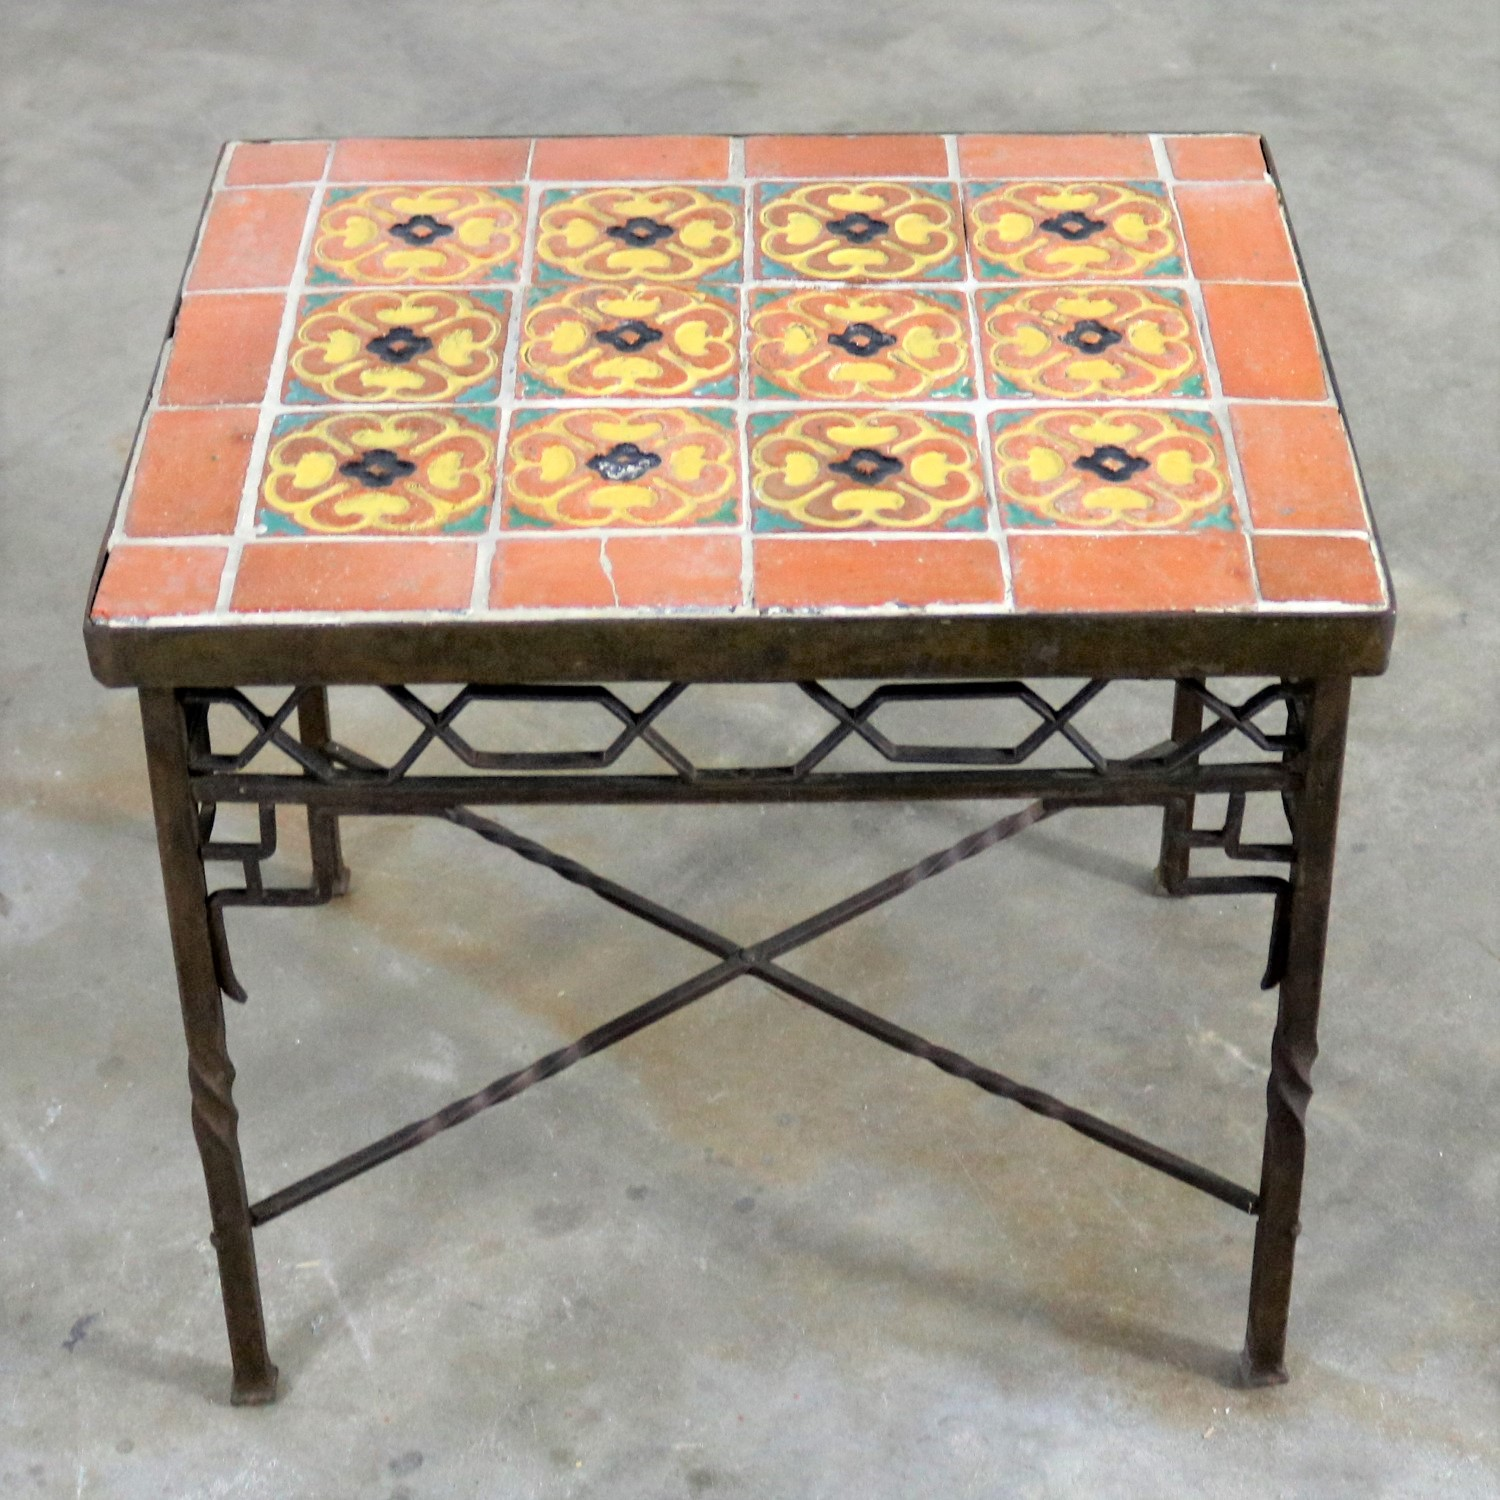 Superieur Art Deco Wrought Iron And Tile Side Table California Style Tiles